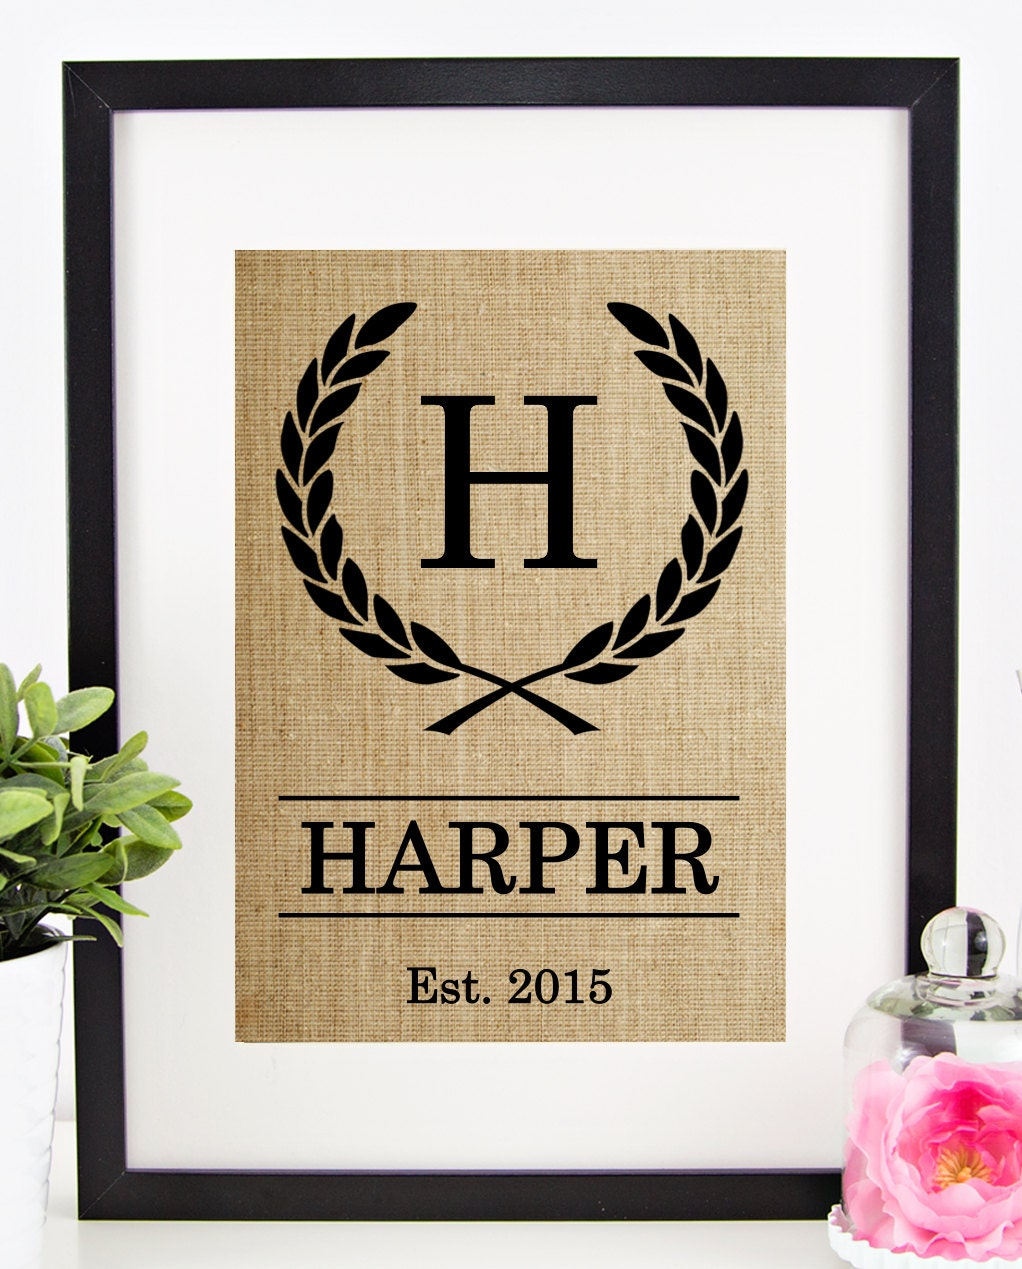 Personalized Country Wedding Gifts: Rustic Wedding Decor Personalized Wedding Gift For Couple